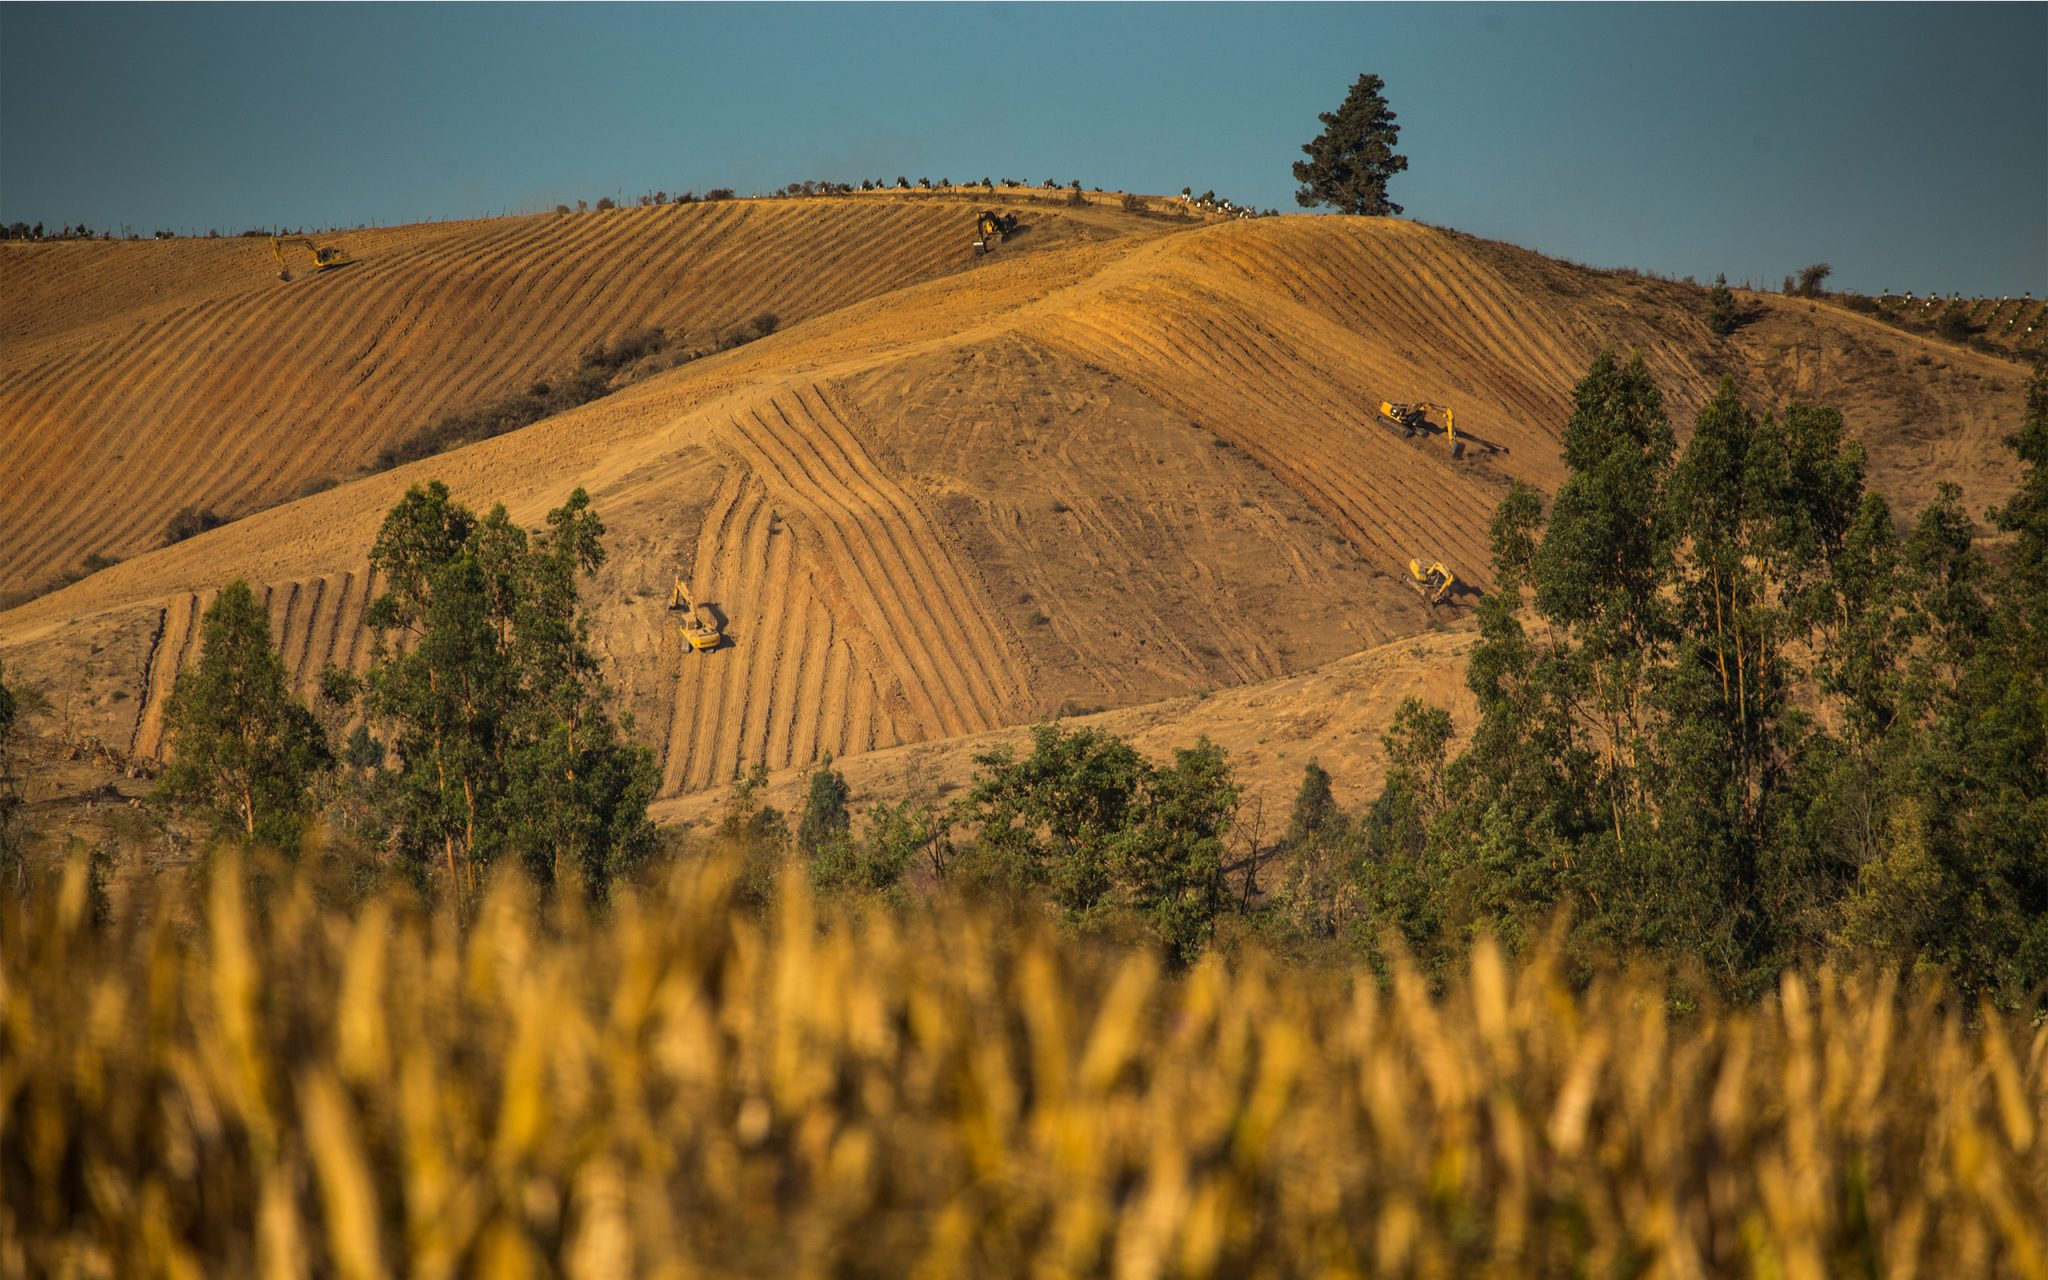 Agricultural machinery clearing slopes leaves the land vulnerable to soil erosion. Rancagua Basin, Chile. Carey Marks Photography